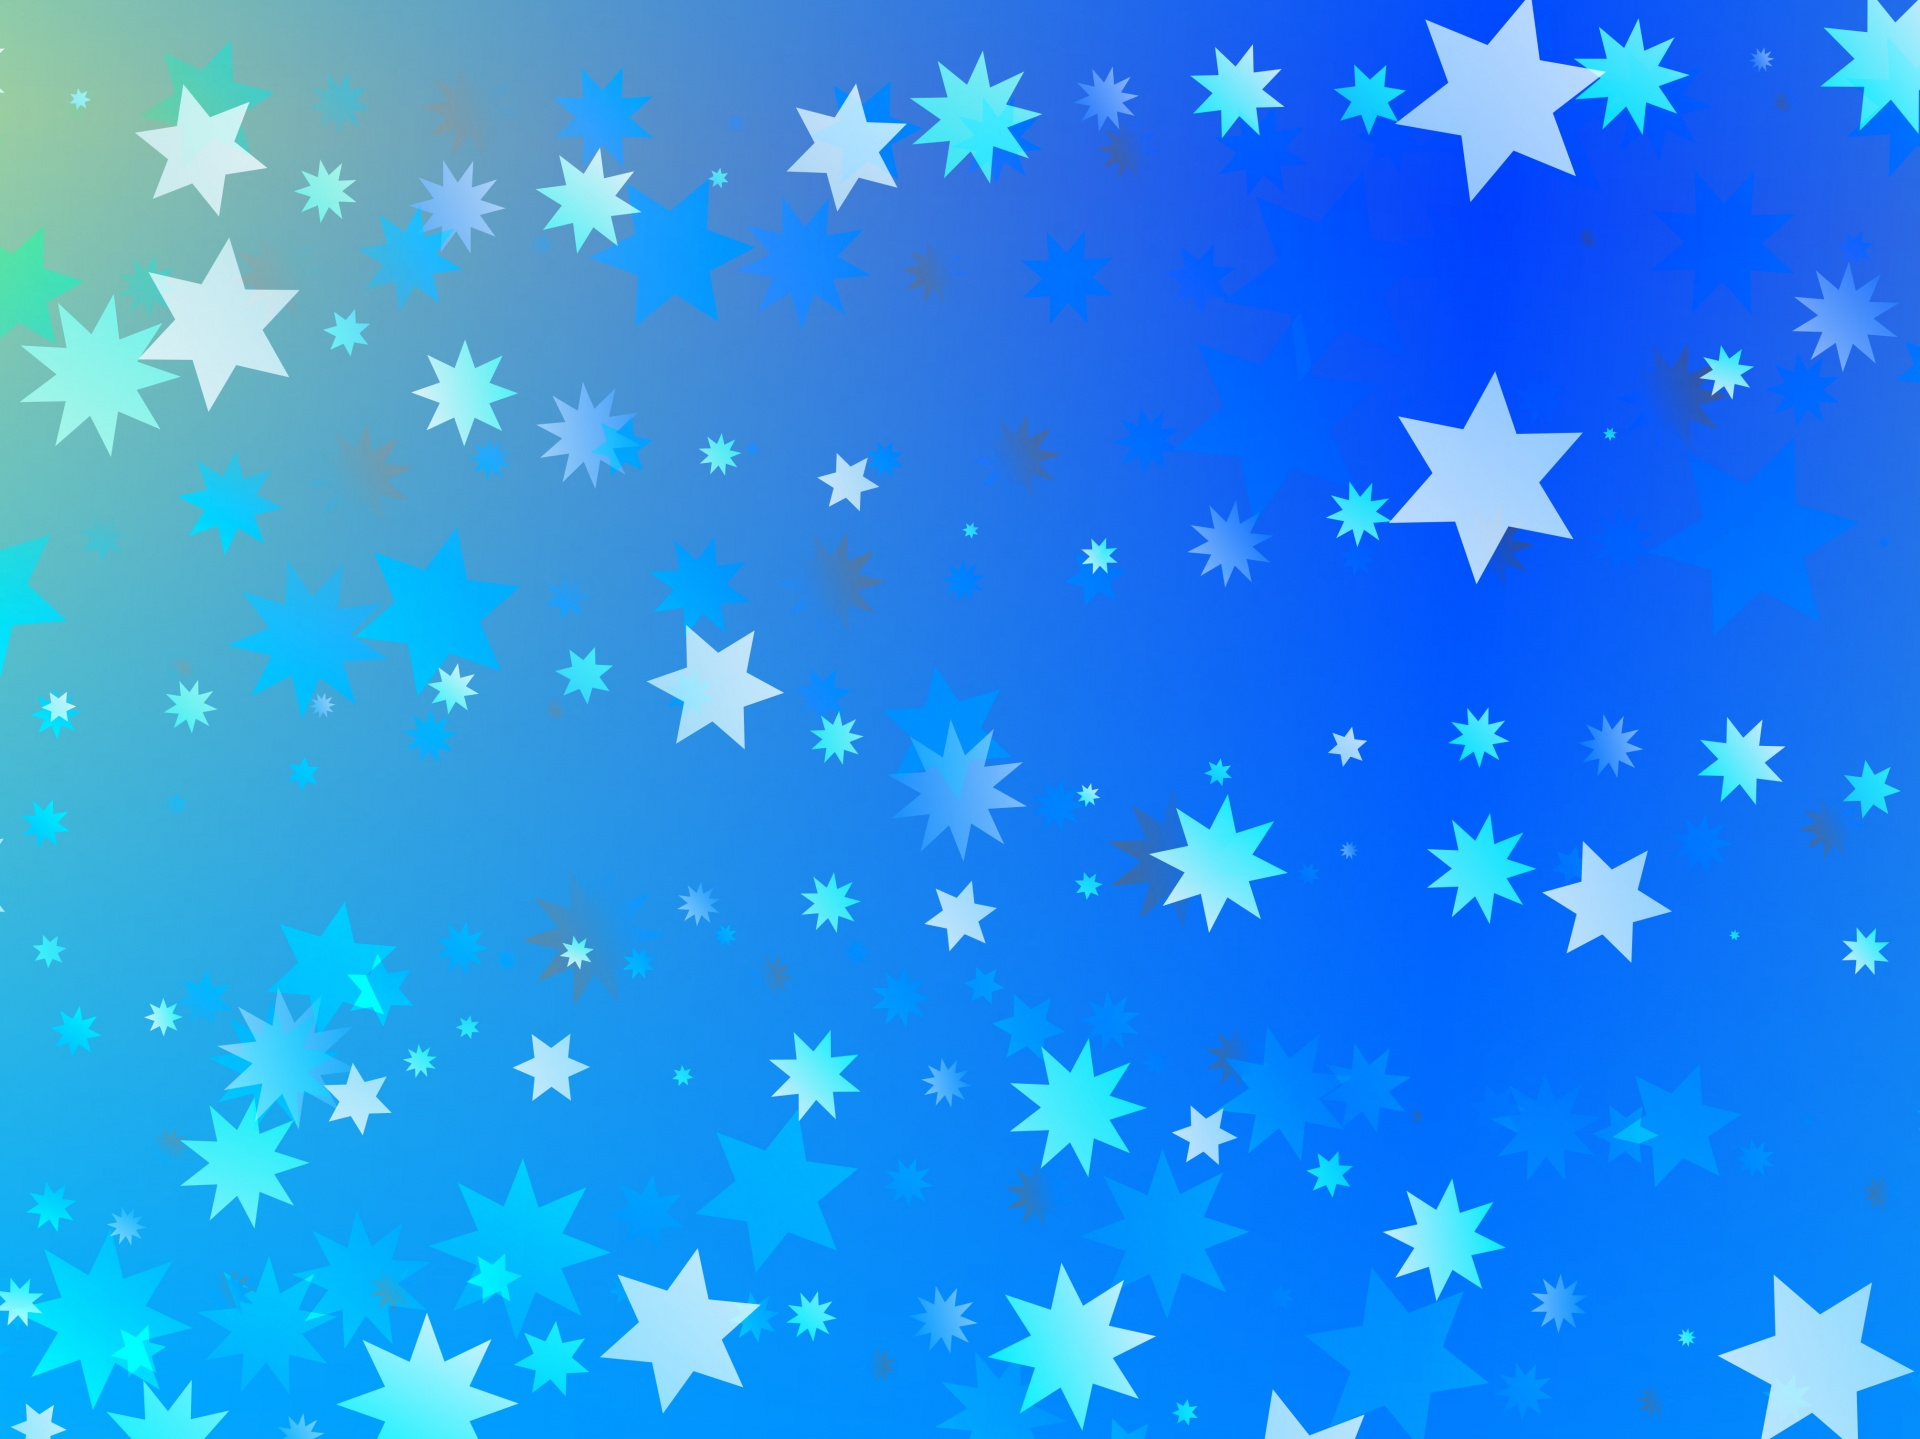 Sweet Cute Wallpapers Mobile Blue Star Background Free Stock Photo Public Domain Pictures